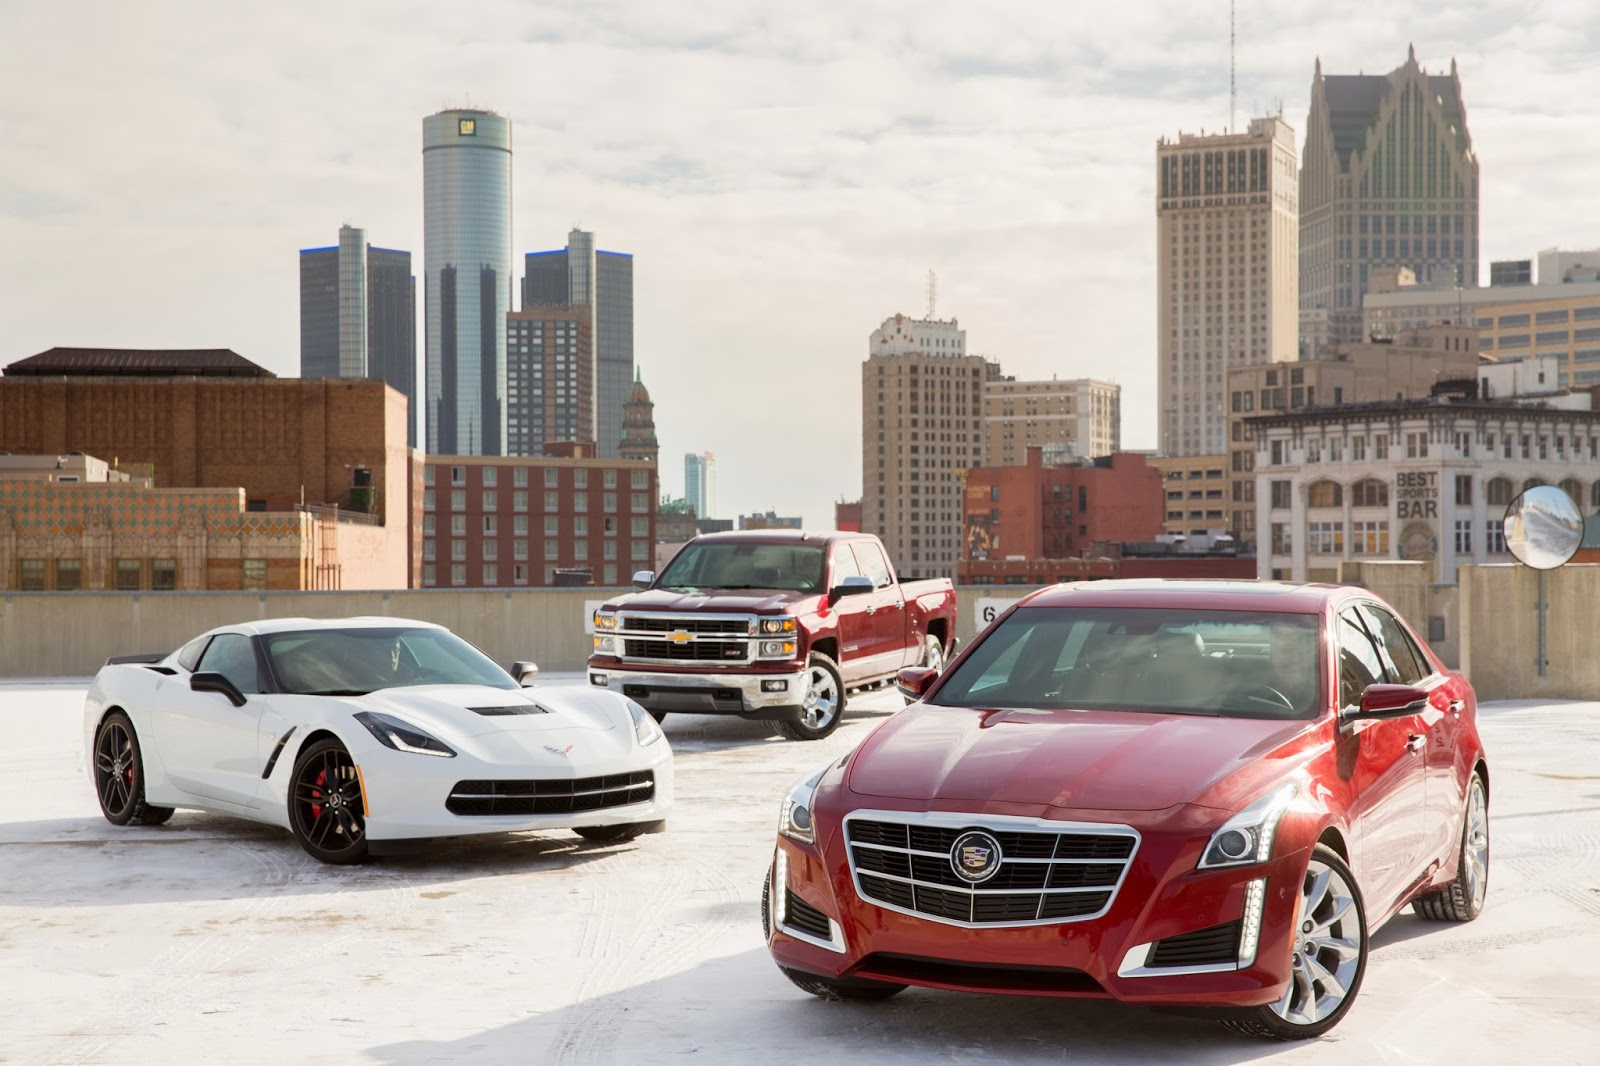 General Motors Nominated for North American Car & Truck of the Year